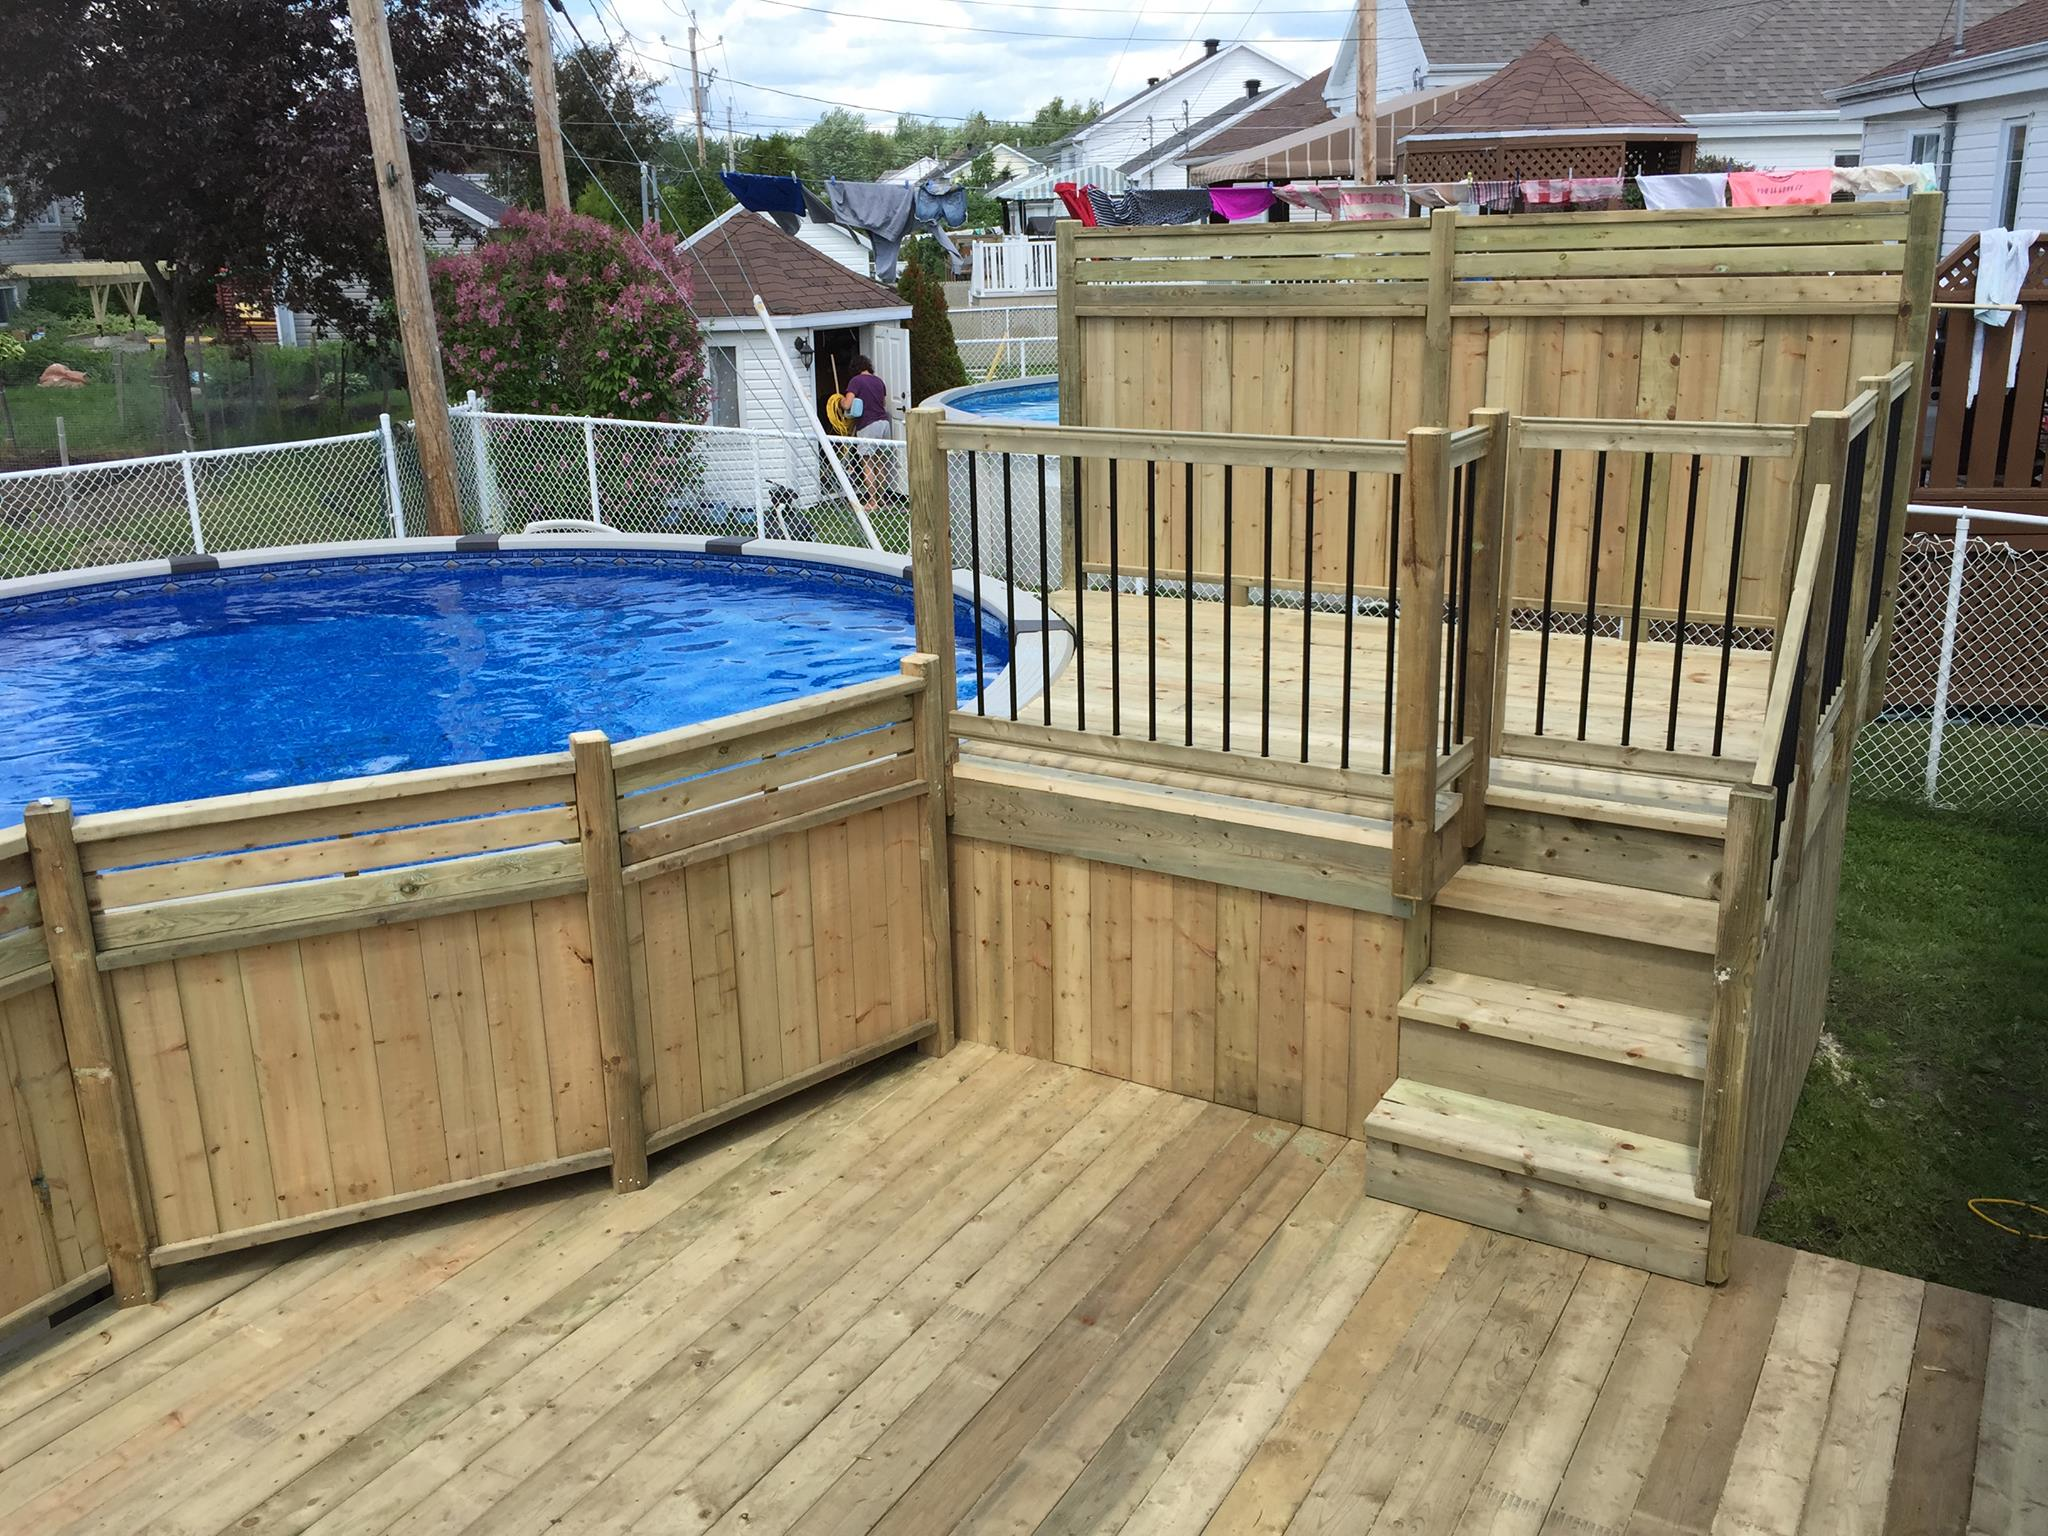 Patios decks piscine patio bois trait for Piscine hors terre